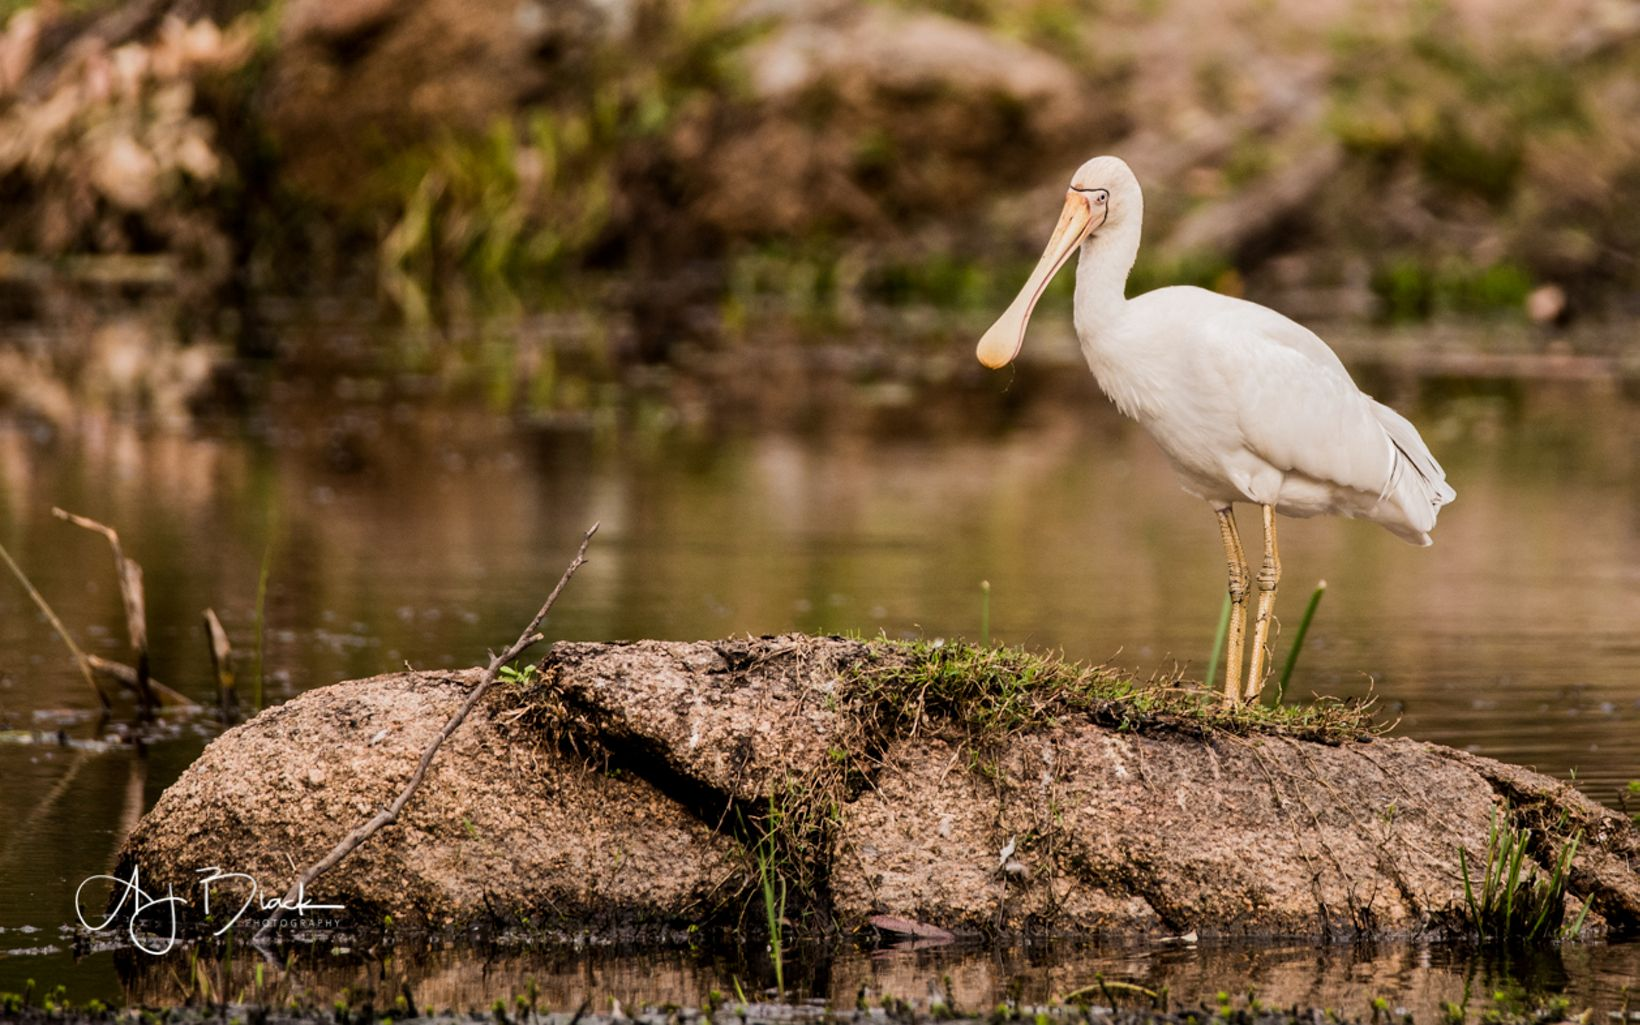 common in southeast Australia. The bill of the yellow-billed spoonbill works like forceps to catch prey